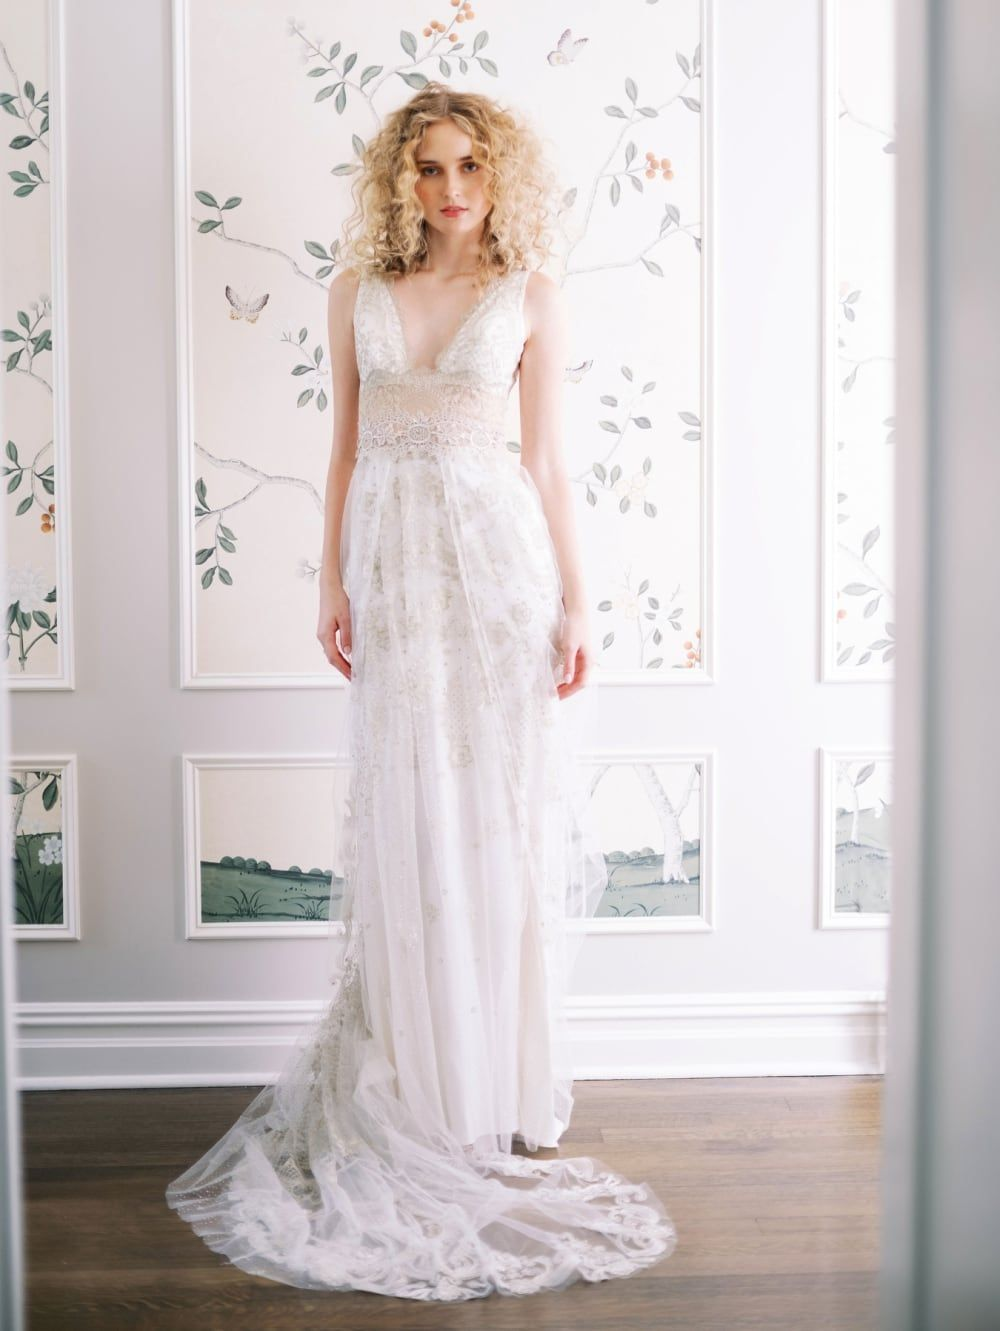 Claire Pettibone Wedding Dresses Evolution 2020 In 2020 Wedding Dresses Wedding Dress Couture Column Wedding Dress